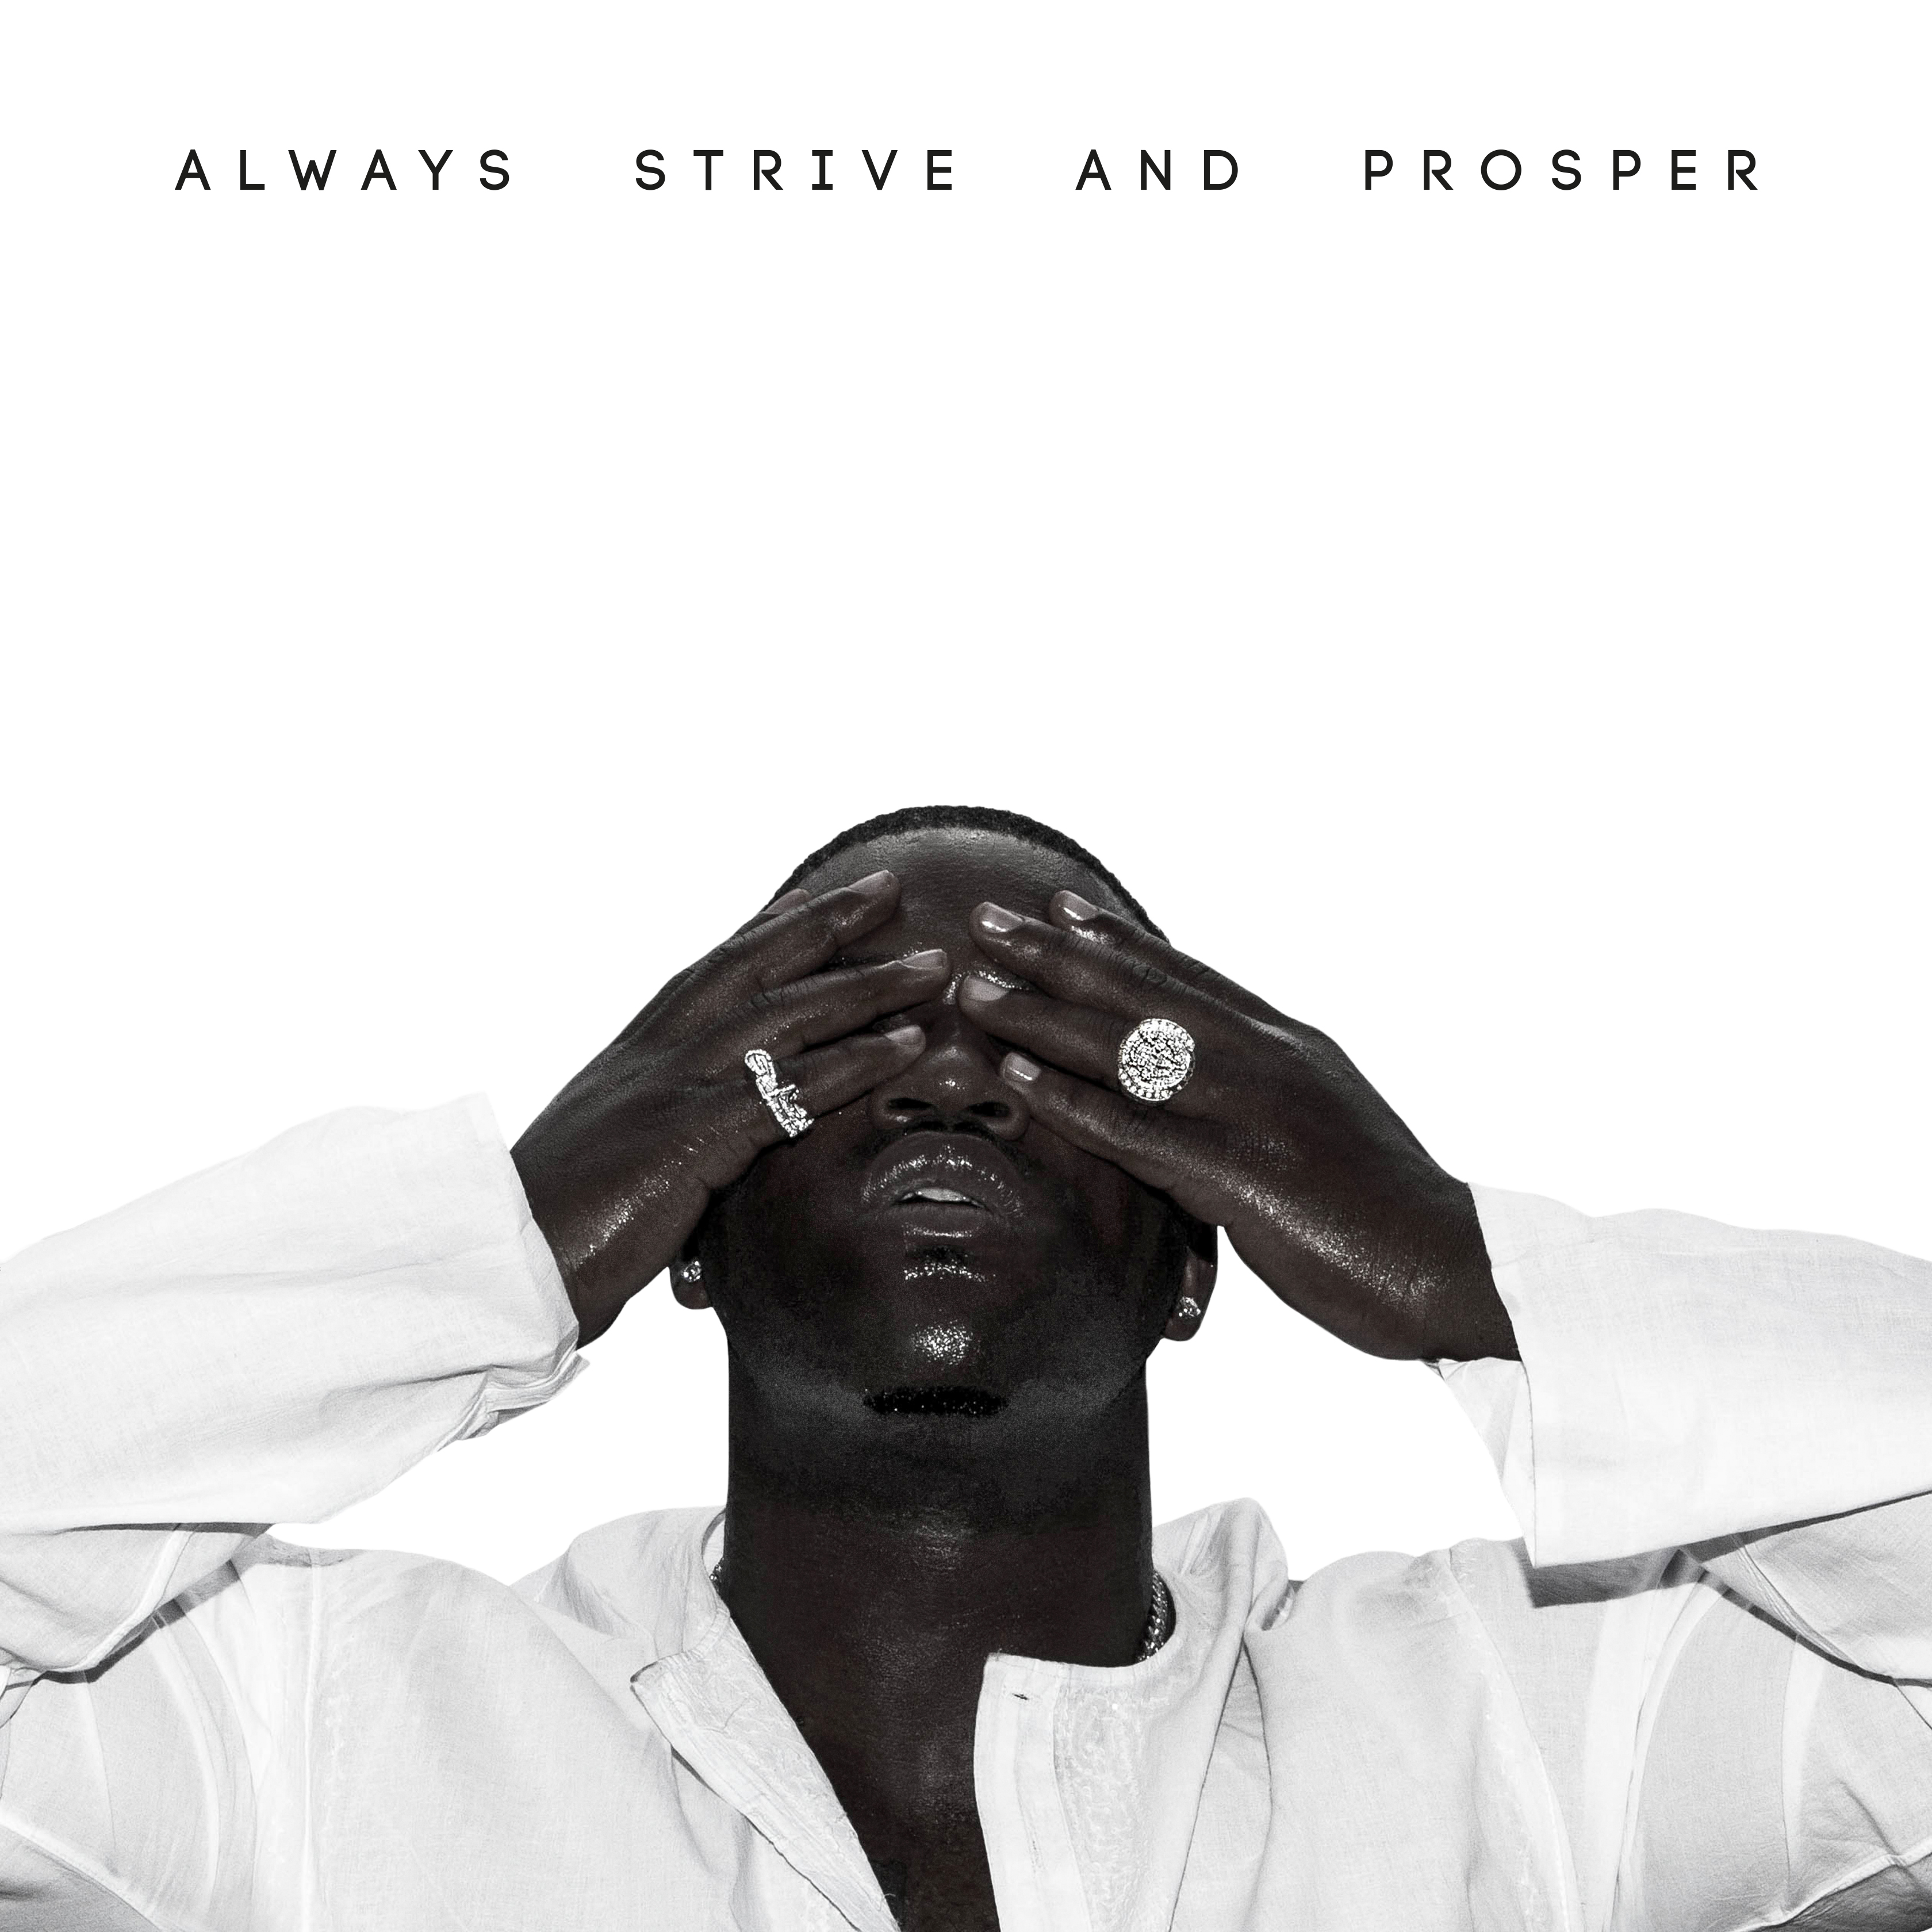 The Trap Lord Trips Up: A$AP Ferg's Always Strive And Prosper